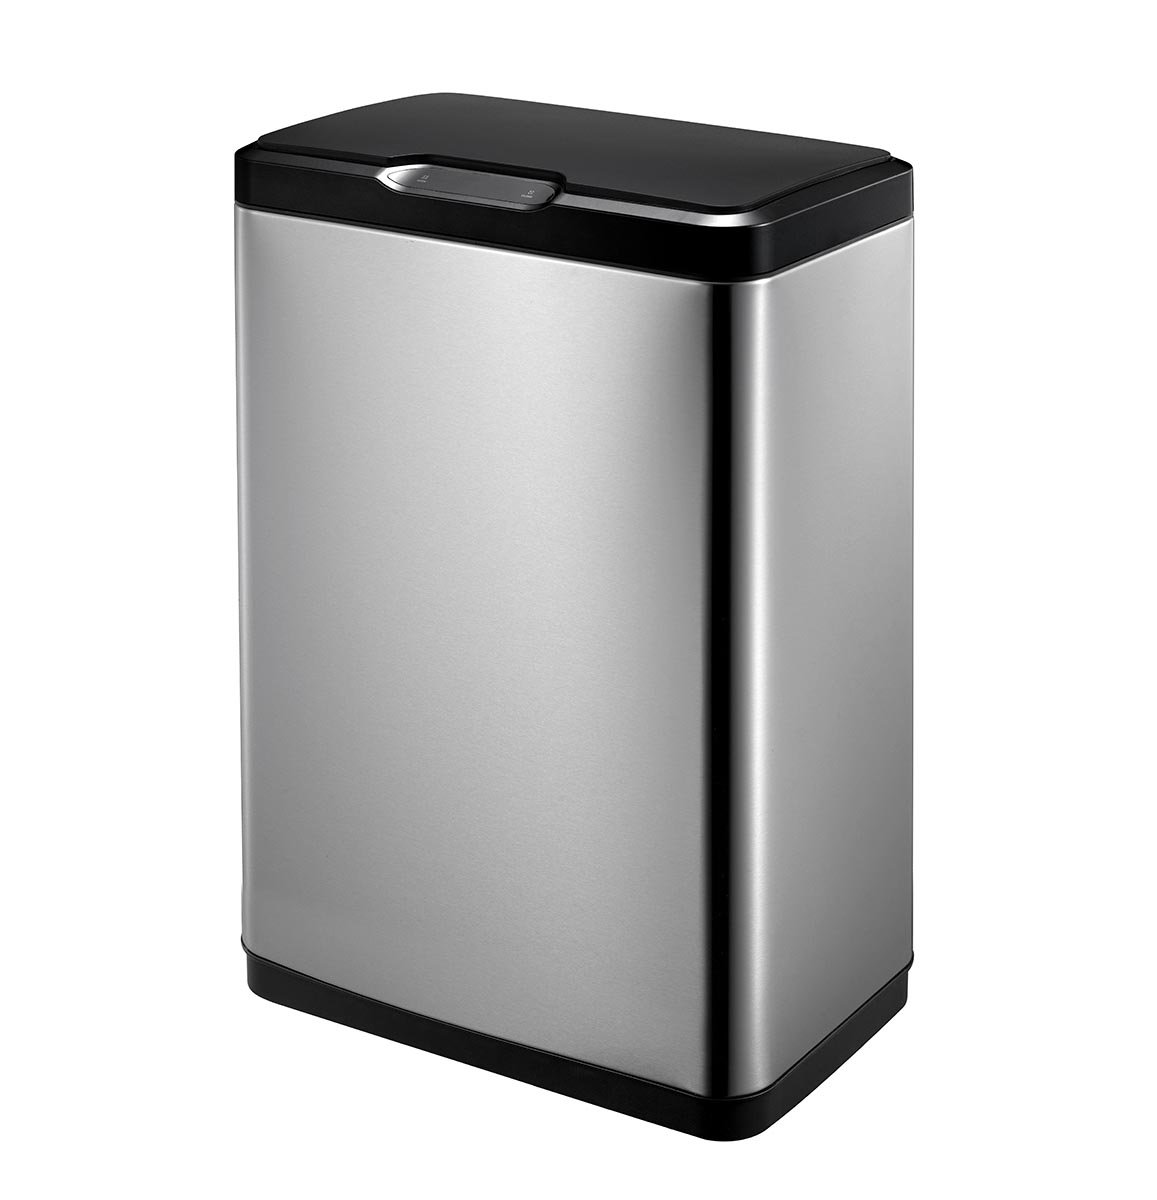 EKO Mirage 50L Trash Can with Soft Close Lid, Stainless Steel EK9278BBMT-50L